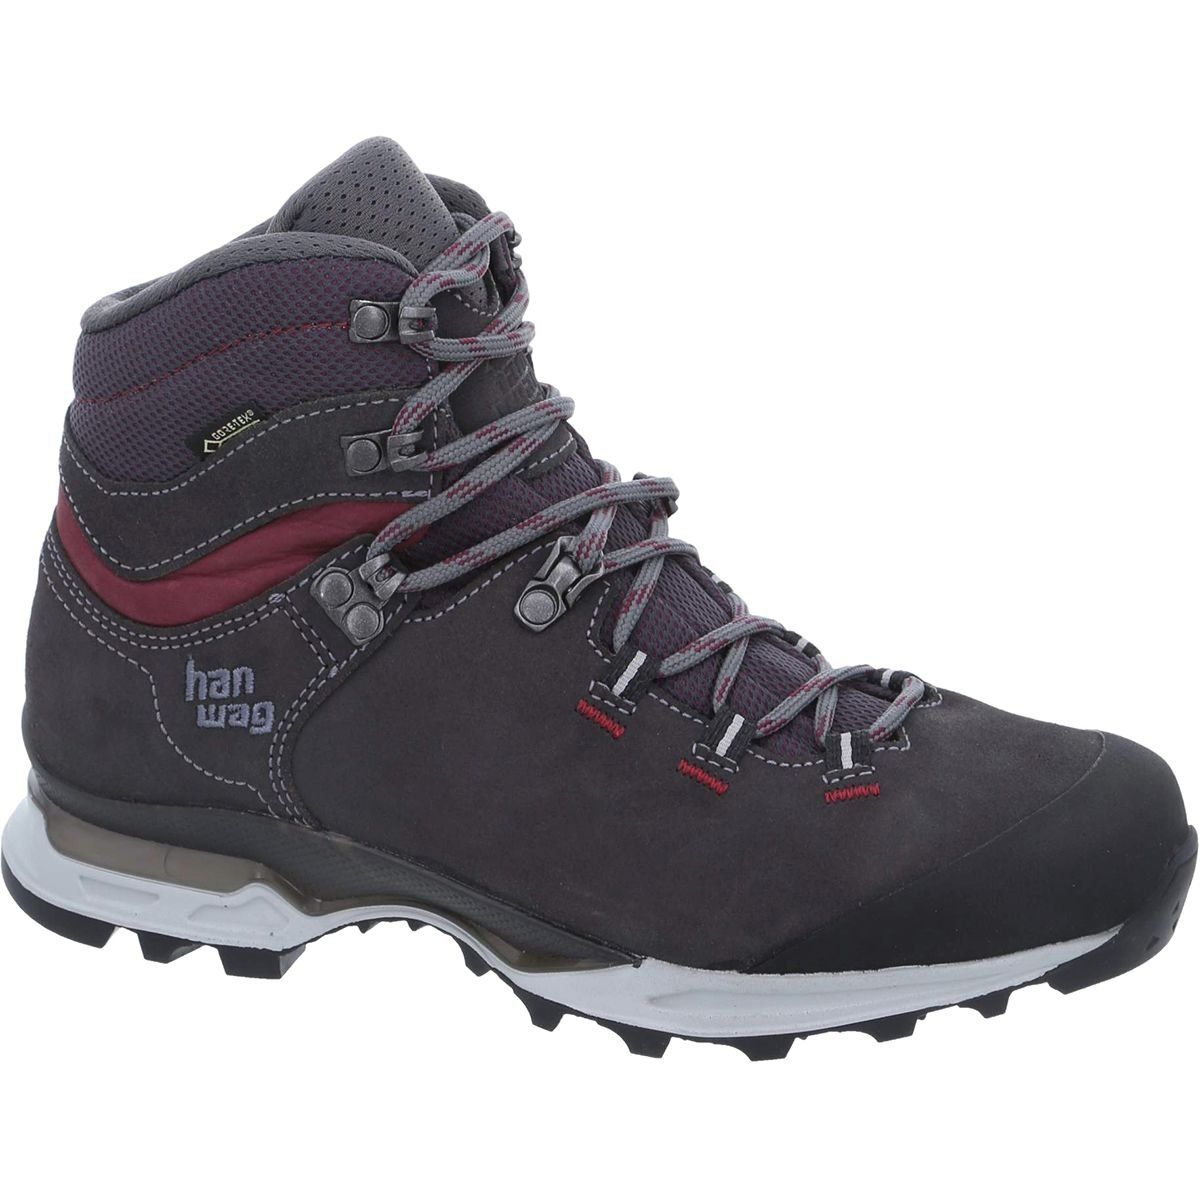 Hanwag Tatra Light Lady GTX - Women's B07B4FHSV2 US 7.5/UK 5.0|Asphalt/Dark Garnet